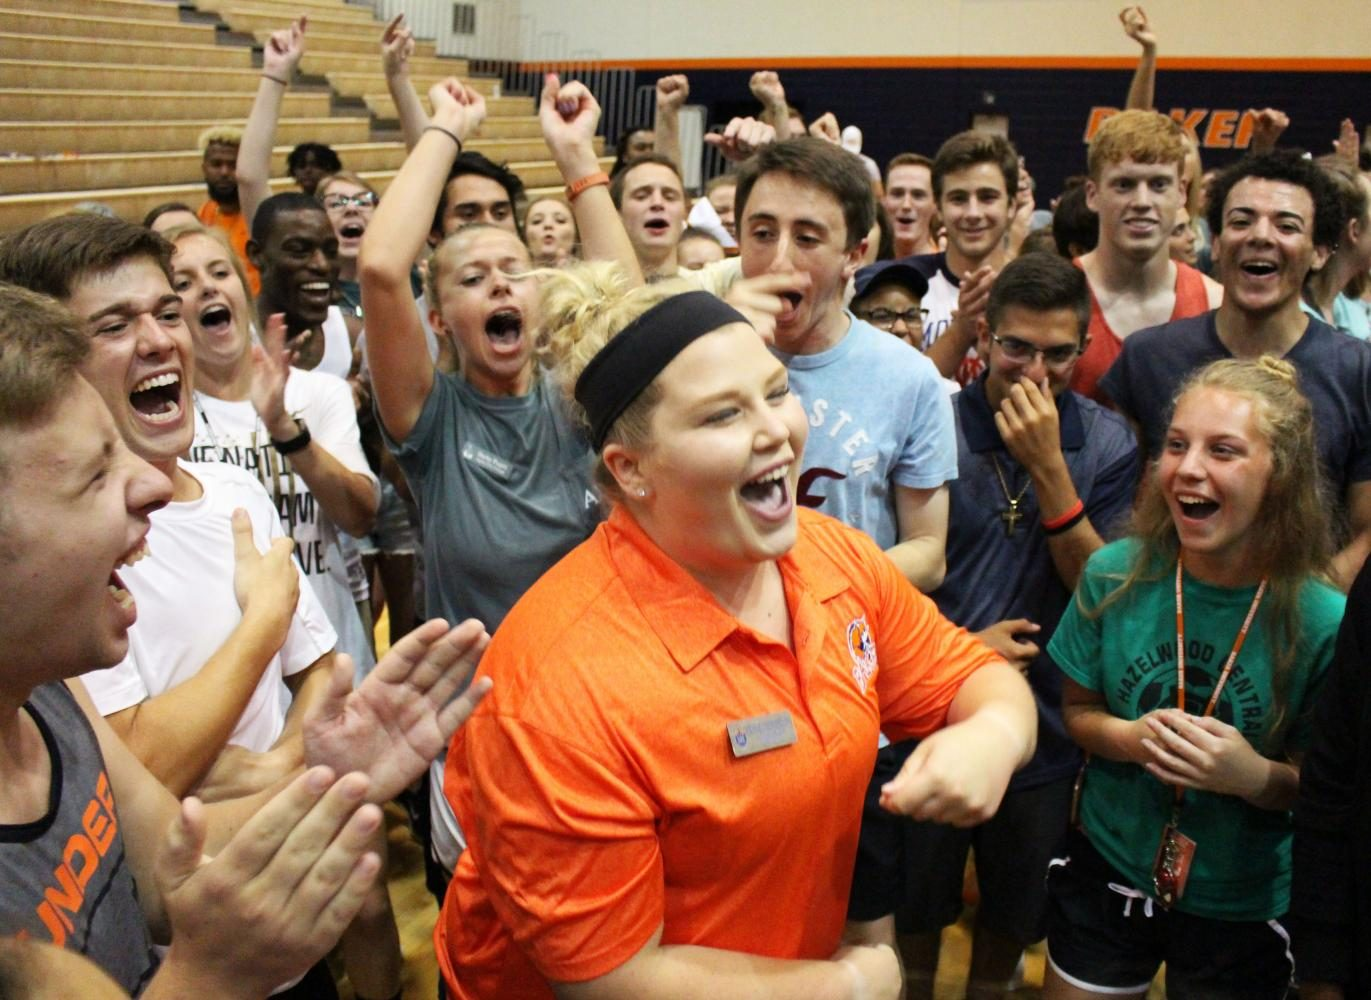 MK Ekins and surrounding students celebrate after Ekins wins a game of rock, paper, scissors at Playfair.